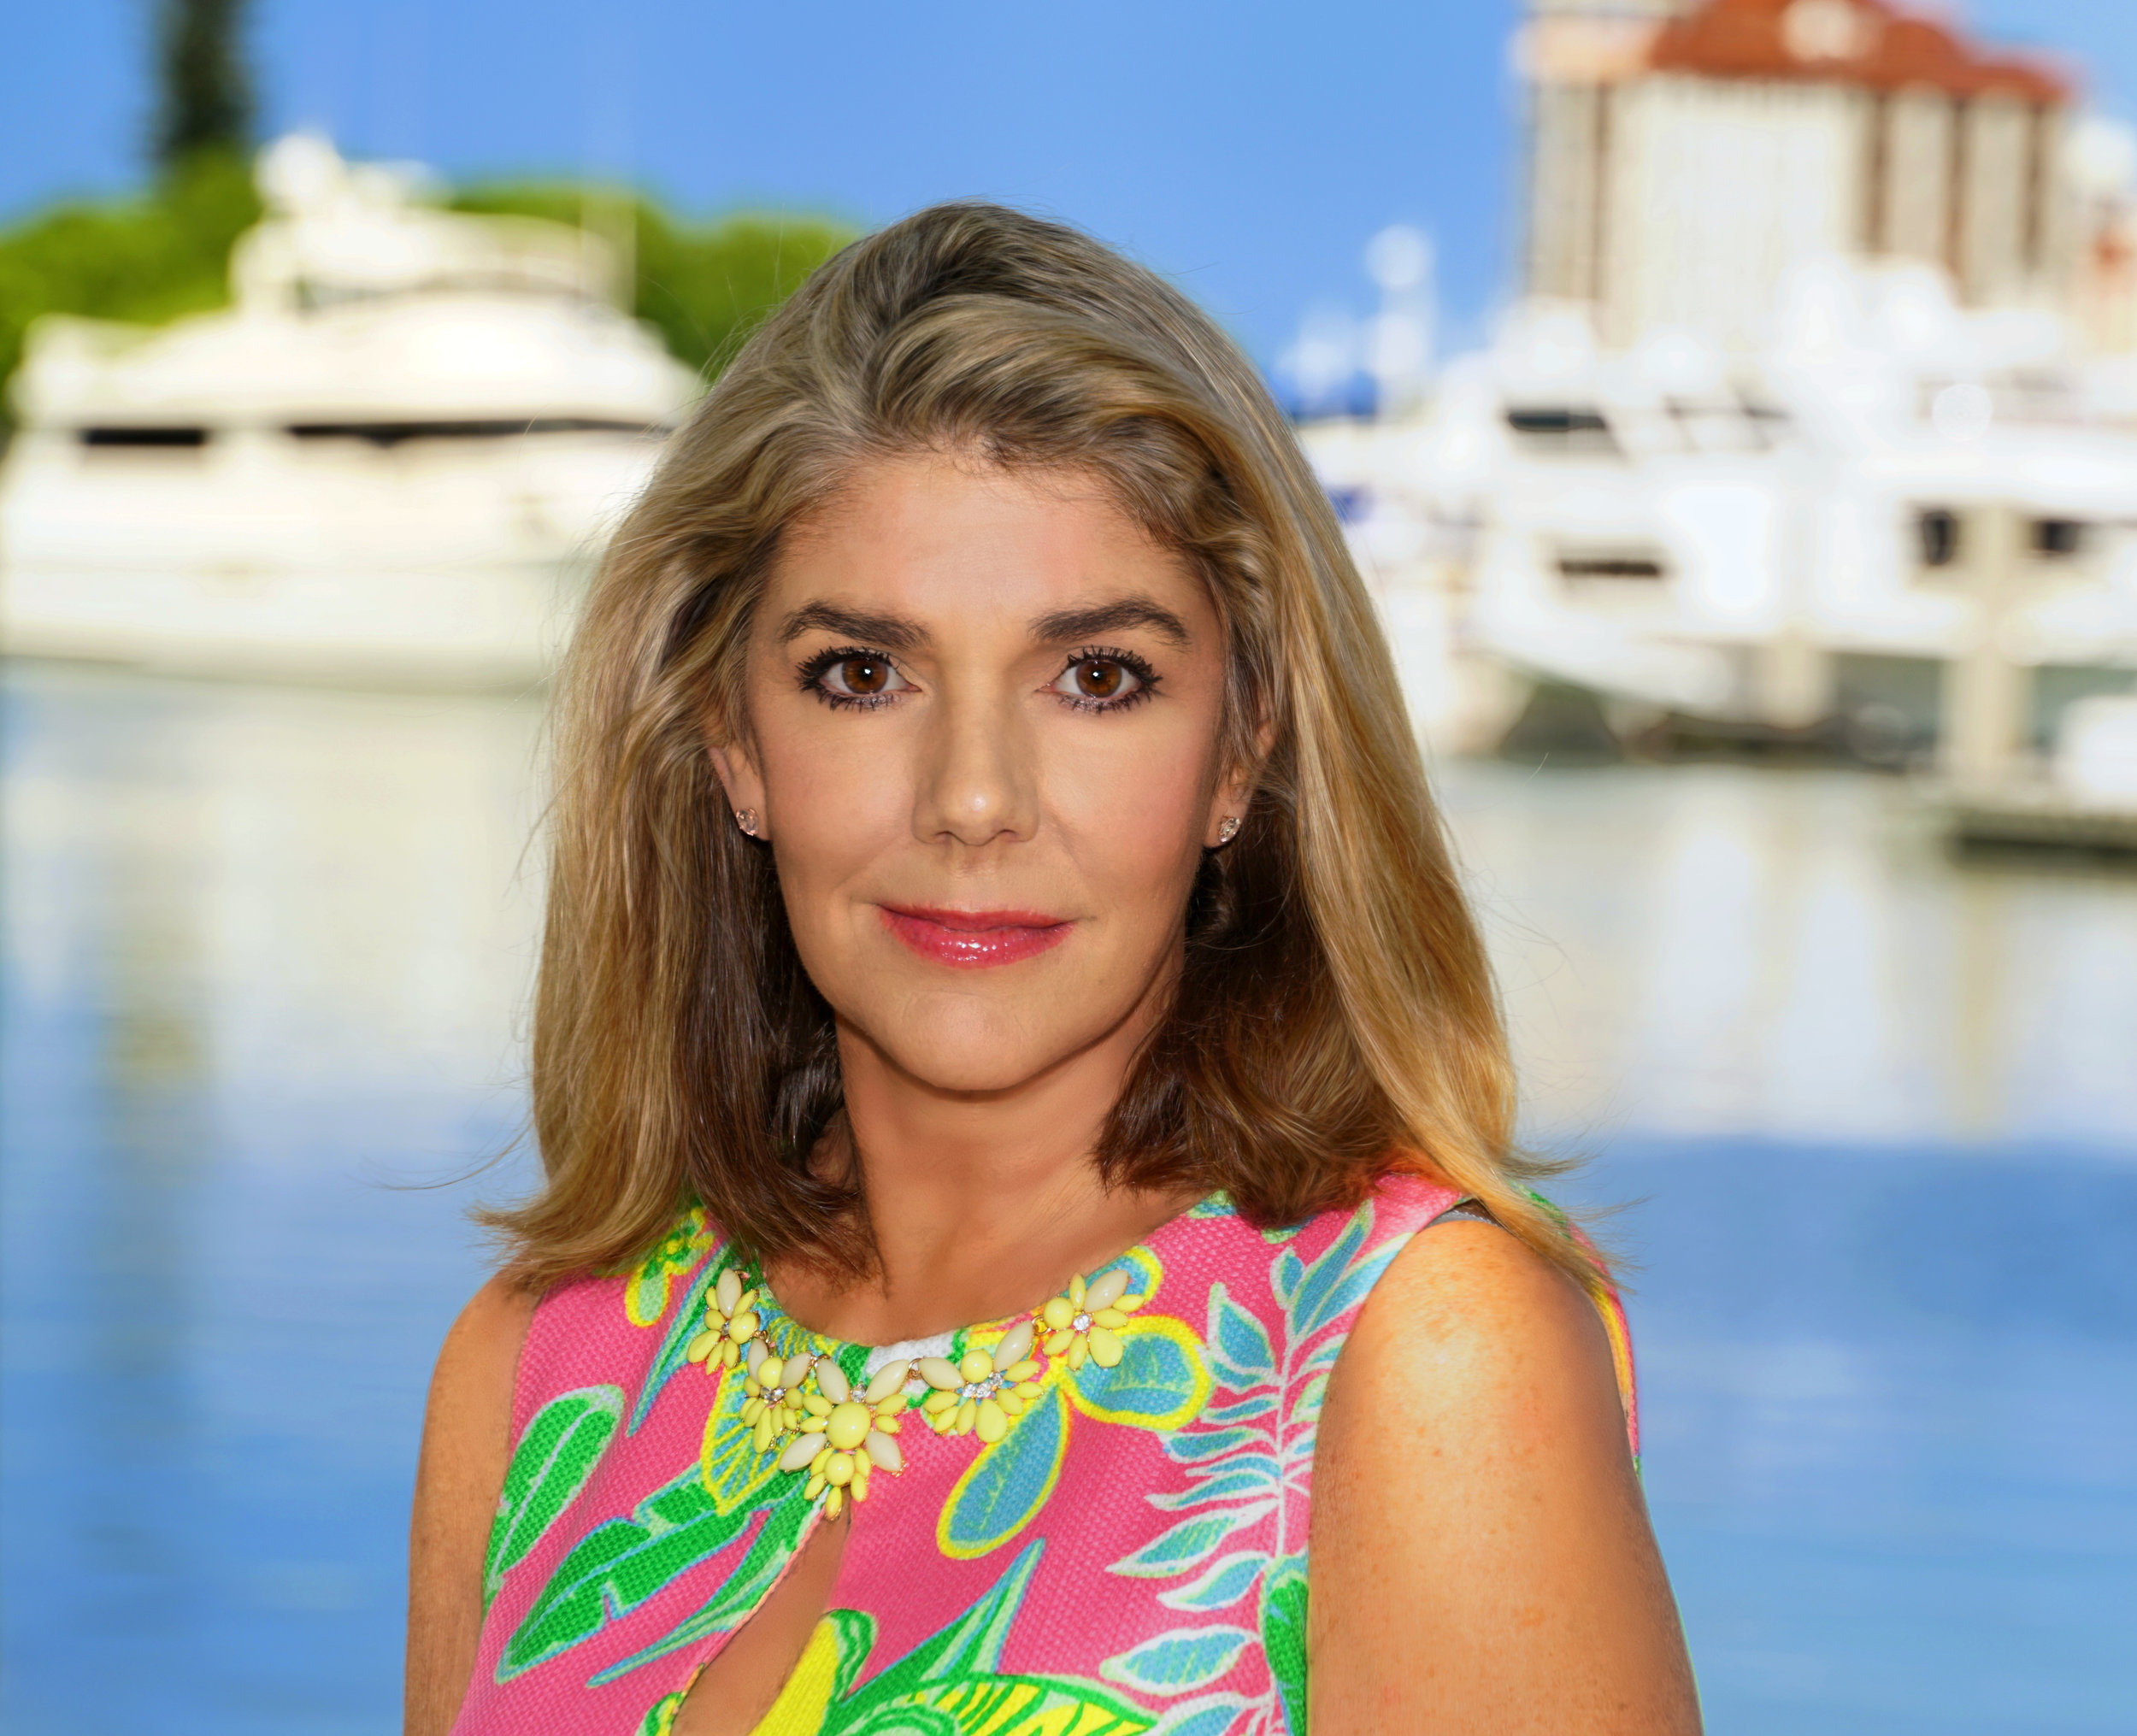 - Many on GGP know Cindy as an active real estate agent in Sarasota with Coldwell Banker Residential Real Estate. You may have seen her on GGP hosting open houses at One88 or met her at the last Meet & Greet at Toscano, where she prepared some spectacular home cooked dishes for GGPA members to enjoy.You may not know that Cindy has an impressive background in working on environmental issues relating to the Sarasota watershed. Cindy's interest in our Florida natural environment and waterways is longstanding.